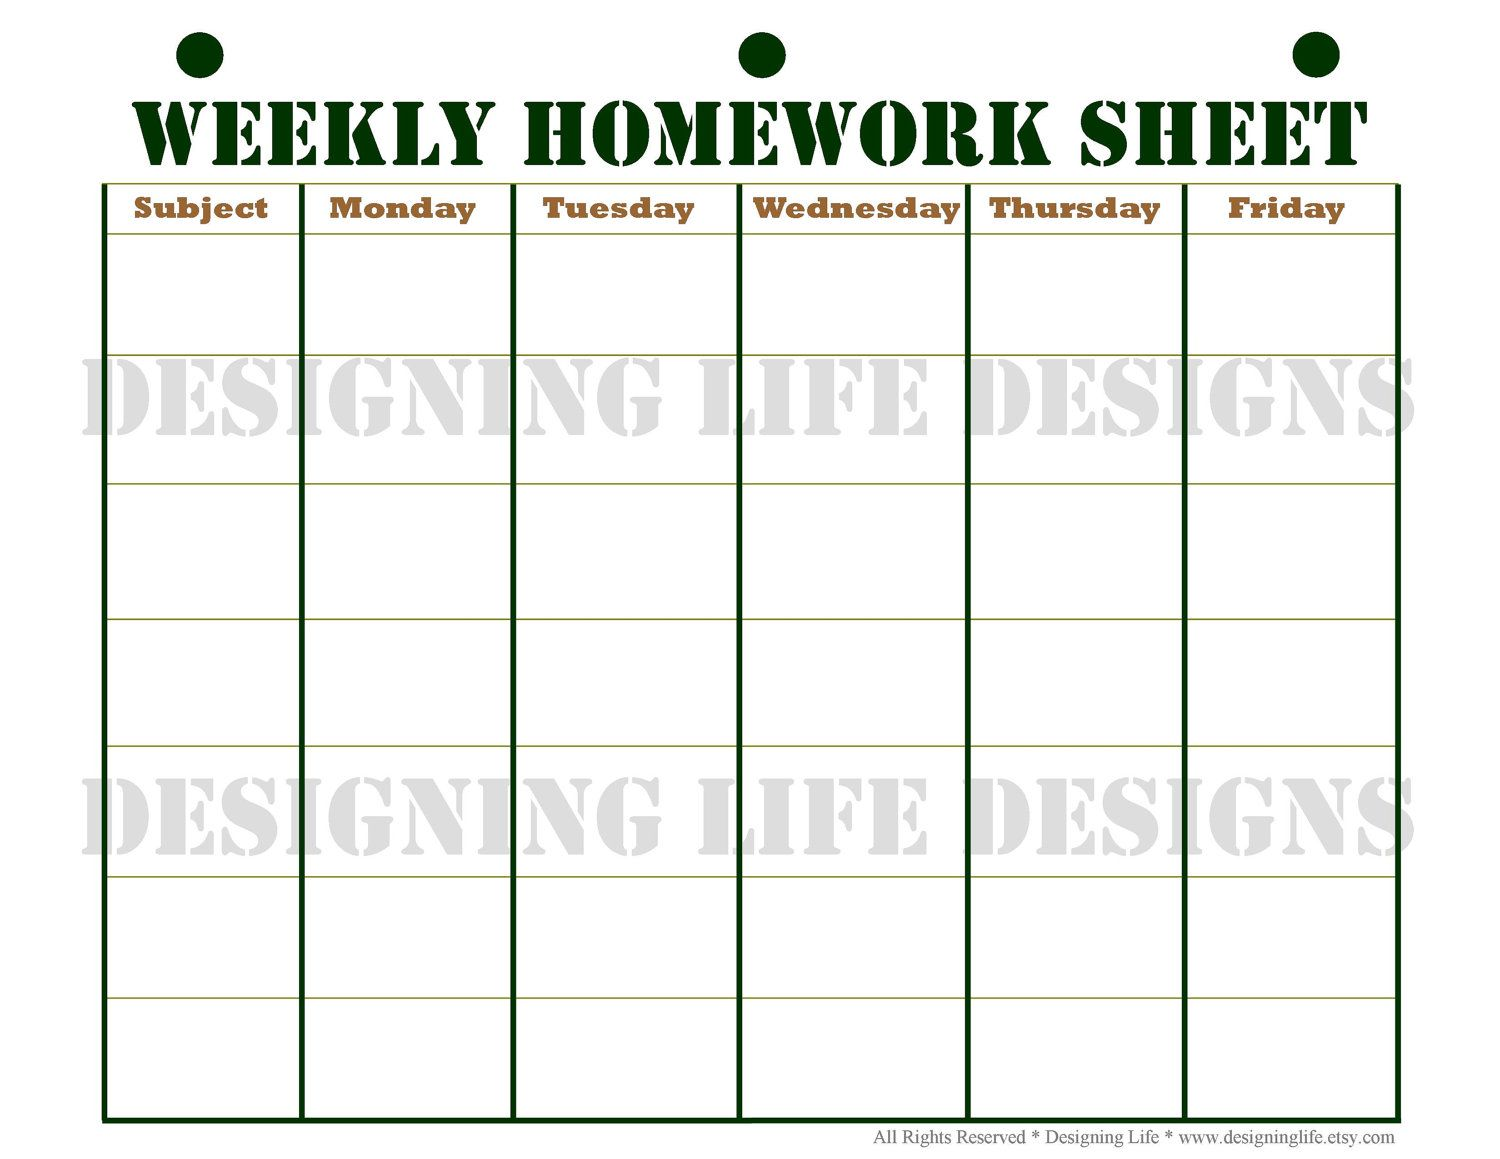 Worksheet Free Homework Sheets 17 best ideas about weekly homework sheet on pinterest planner and student pdf printable 5 00 via etsy